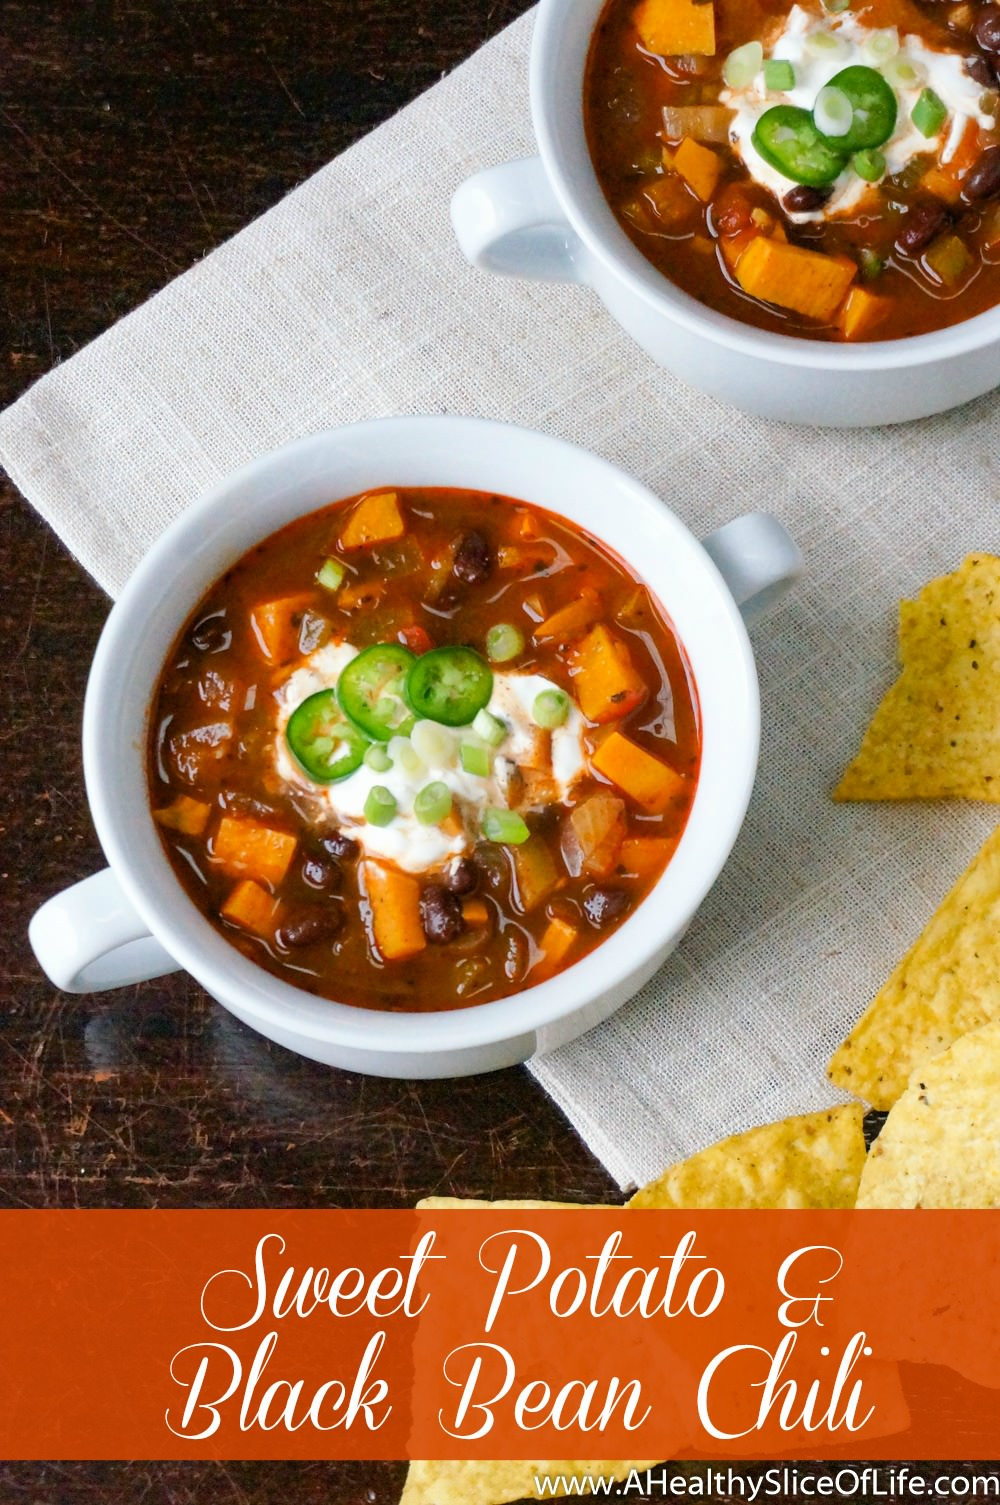 Sweet Potato Black Bean Chili  Spicy Sweet Potato & Black Bean Chili